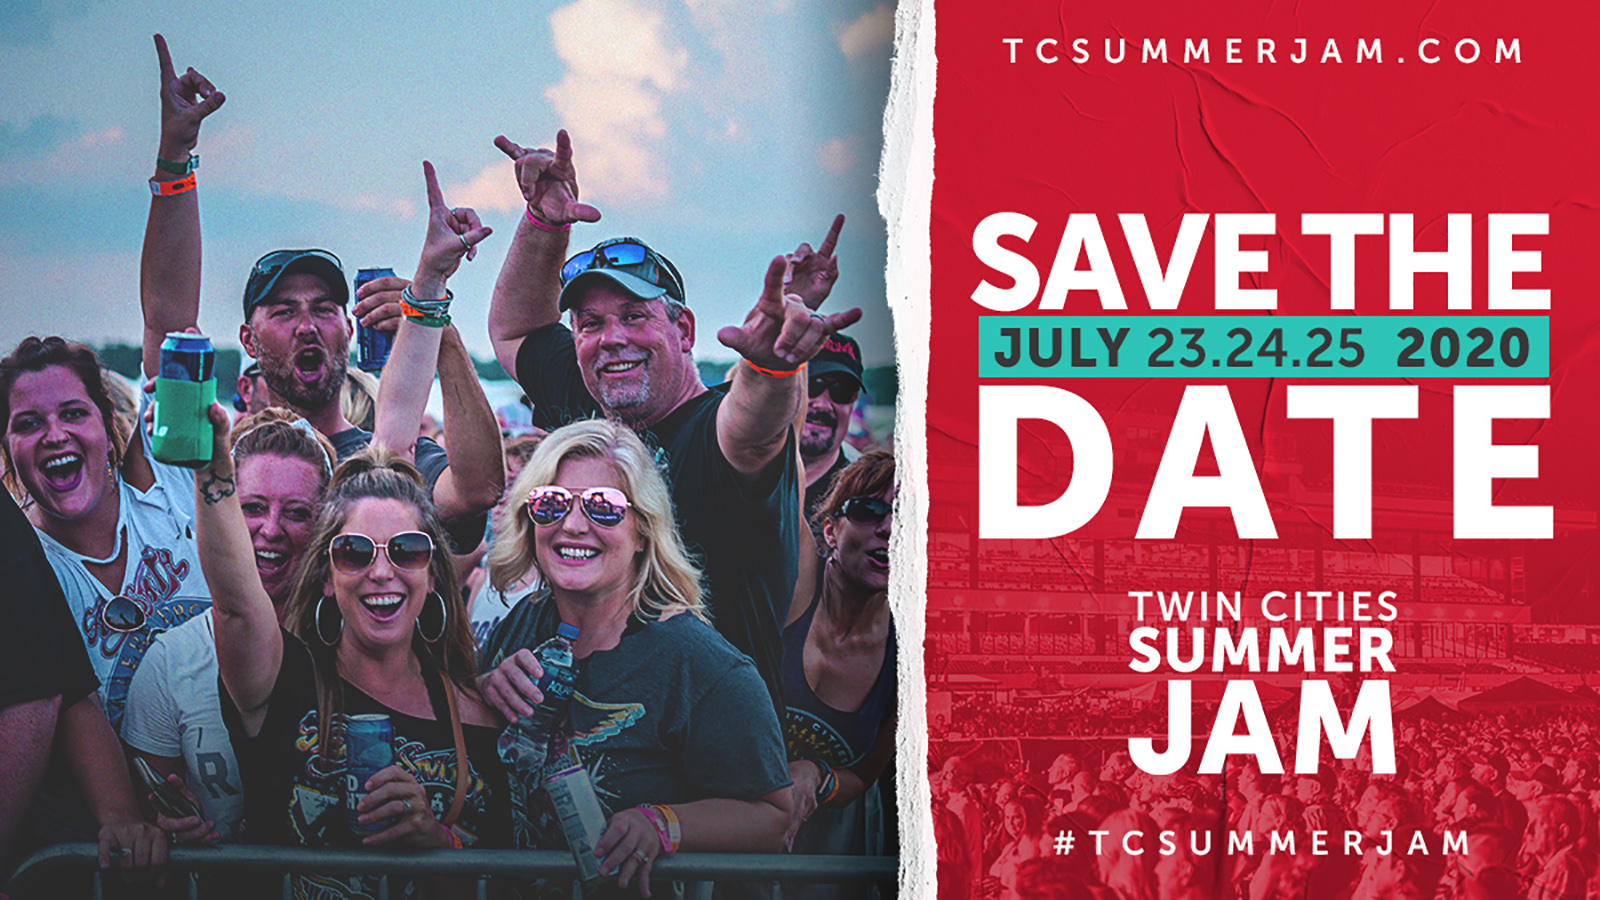 Twin Cities Summer Jam